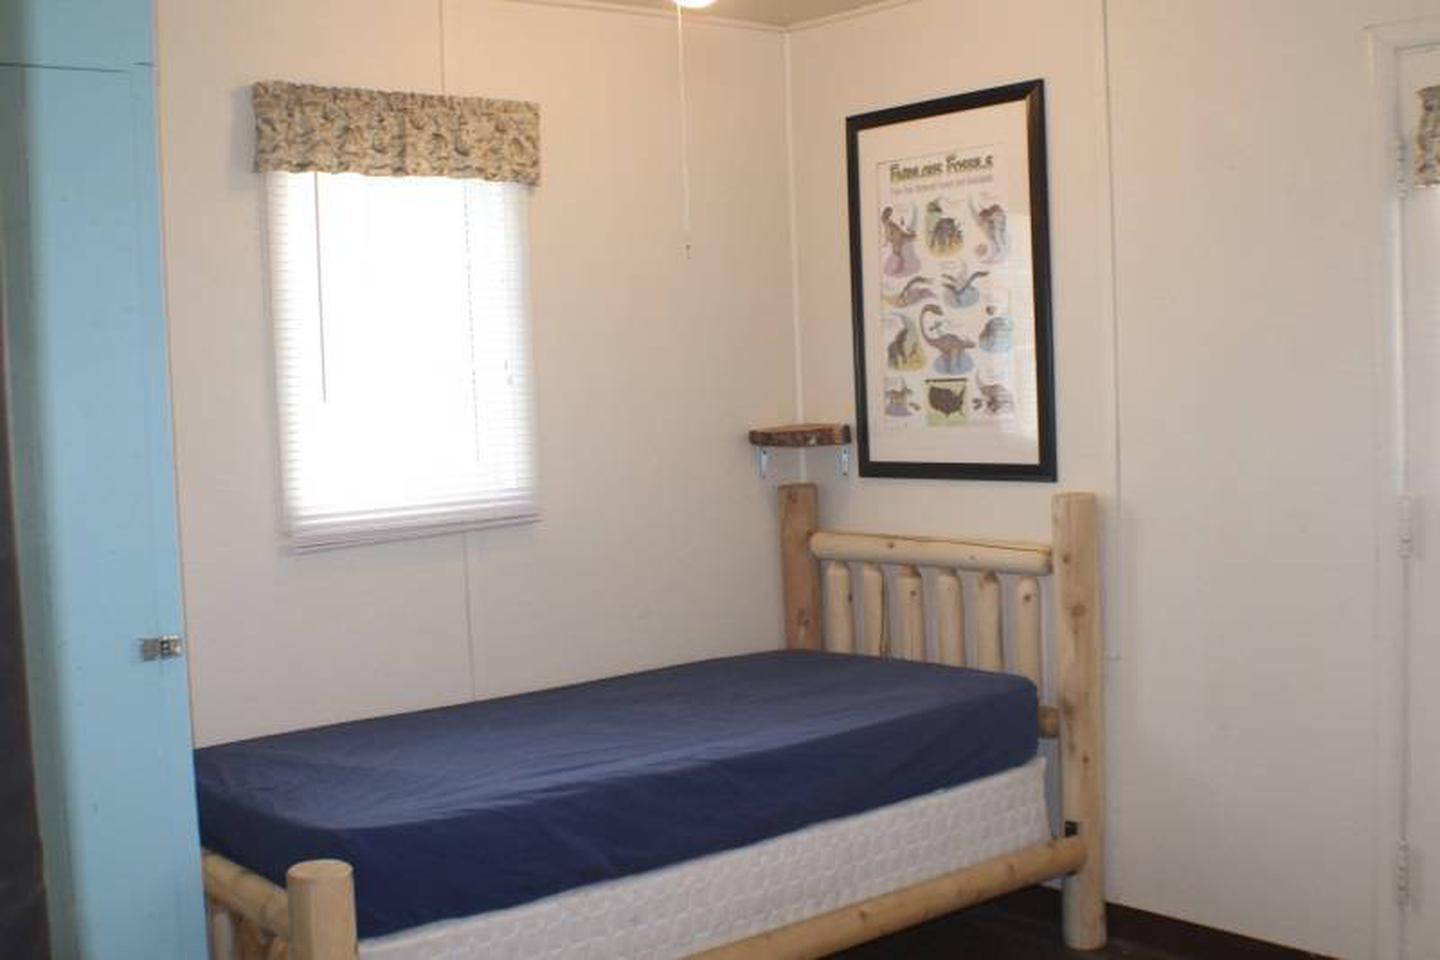 twin bedCabin 5: View to right of door showing twin bed.